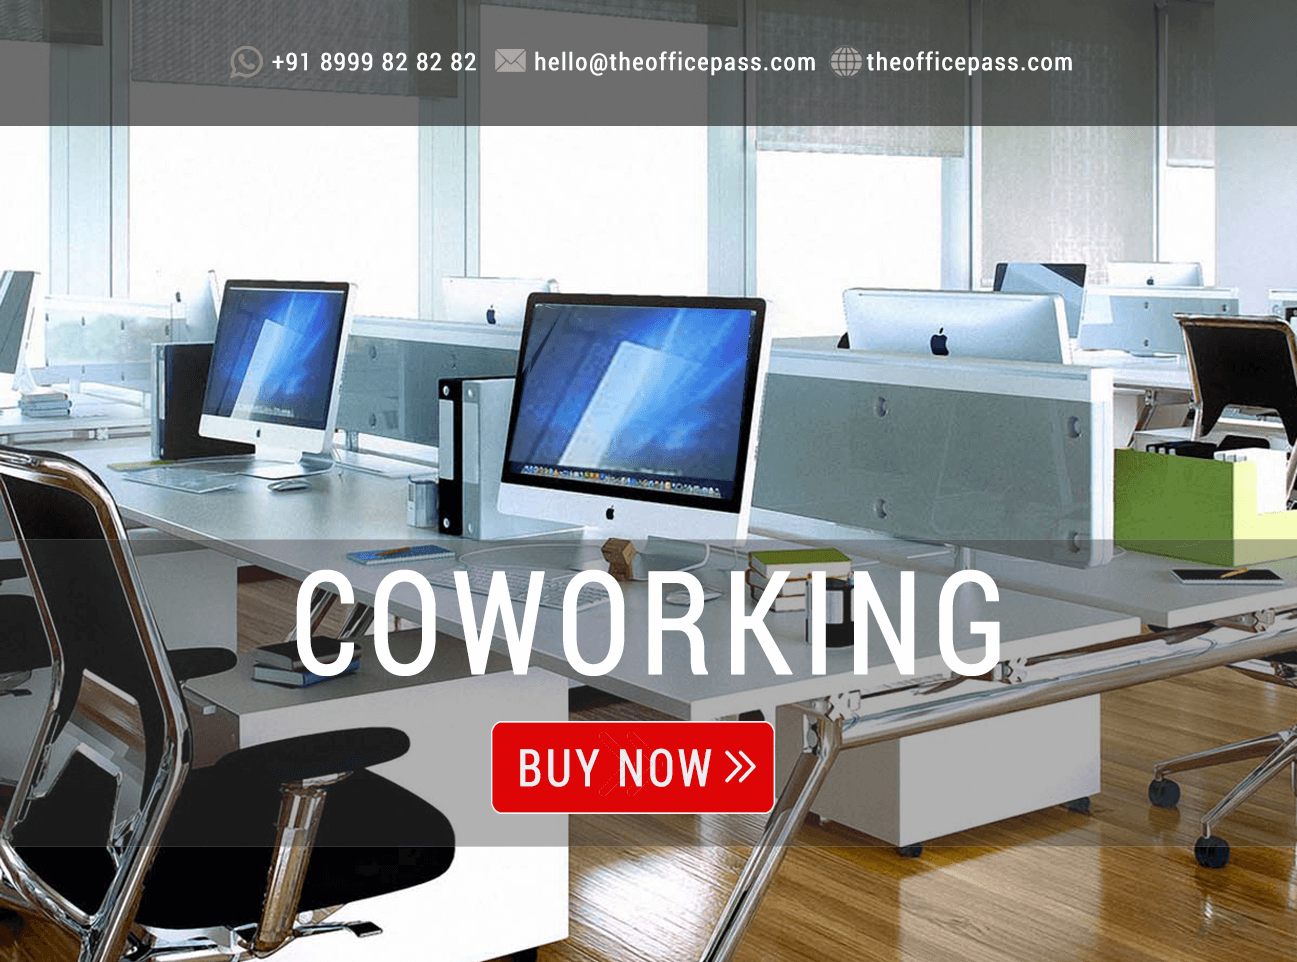 Book Coworking Office Space Online in under 3 minutes | The Office Pass